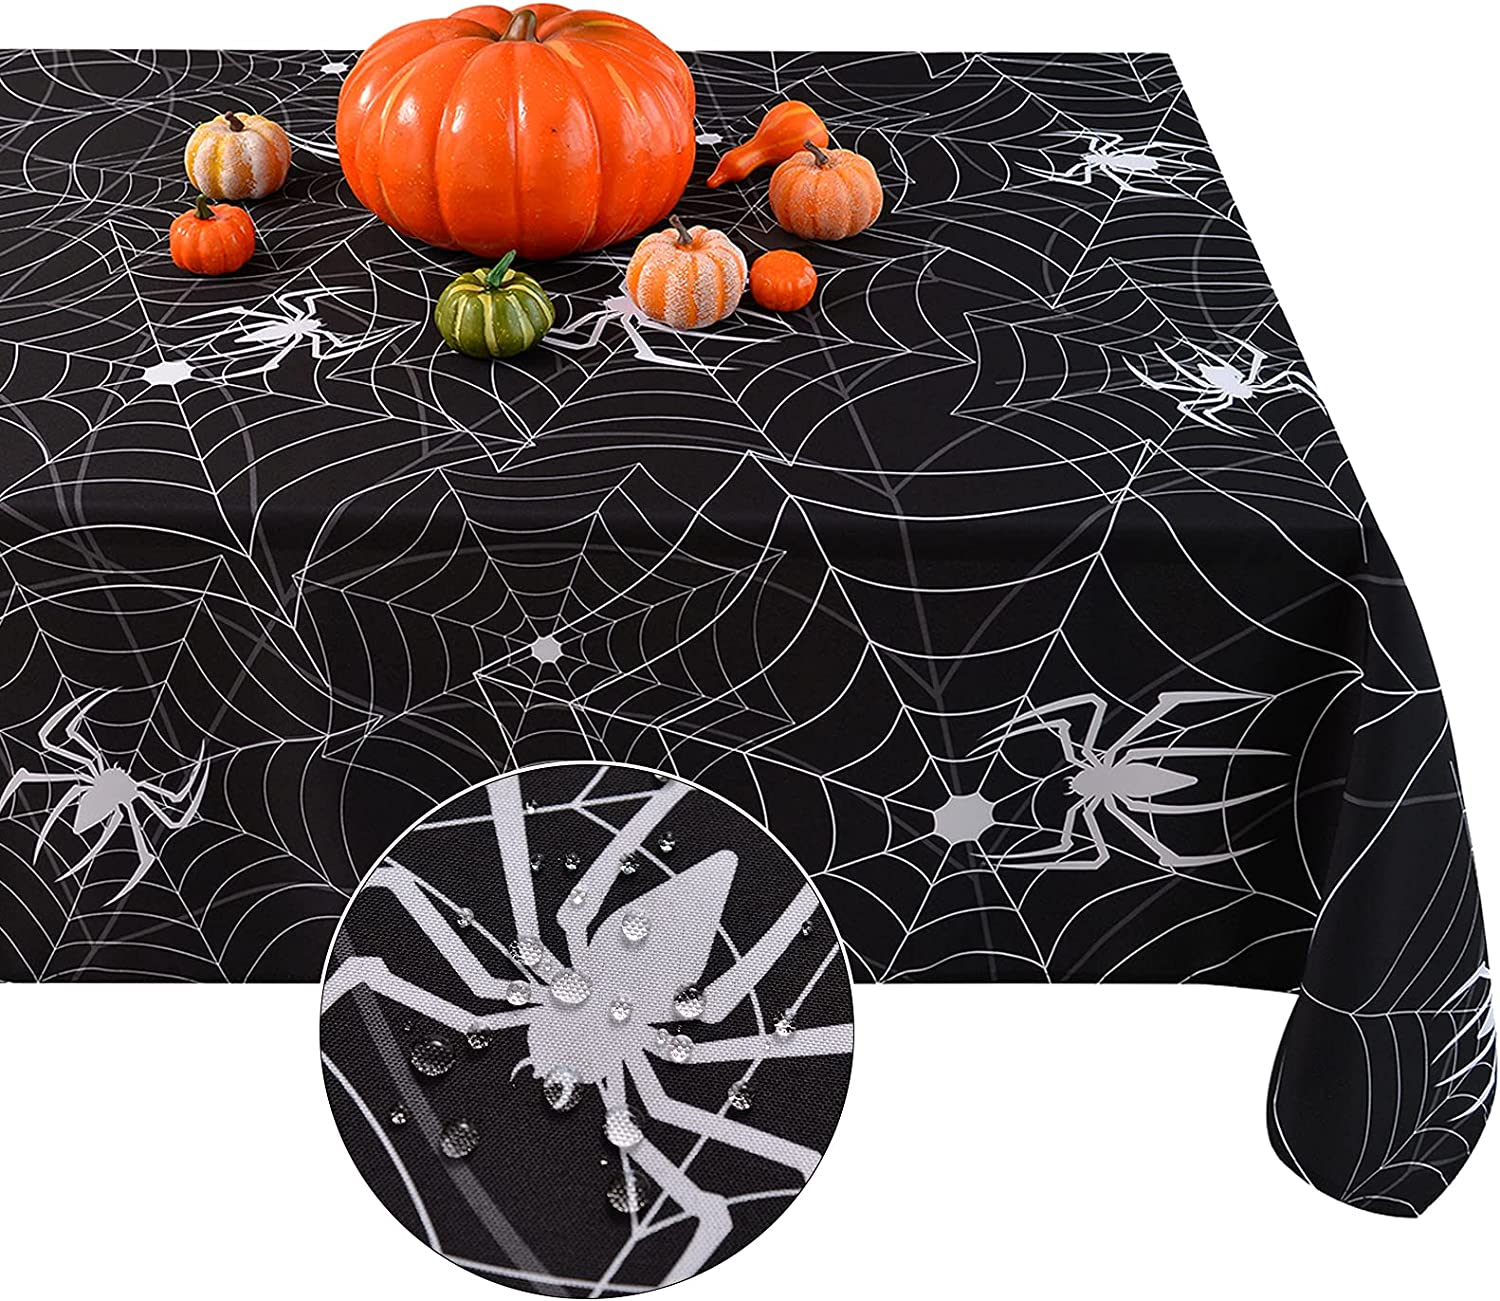 Softalker Halloween Rectangle Washabl Tablecloth,Waterproof Sales of Now on sale SALE items from new works